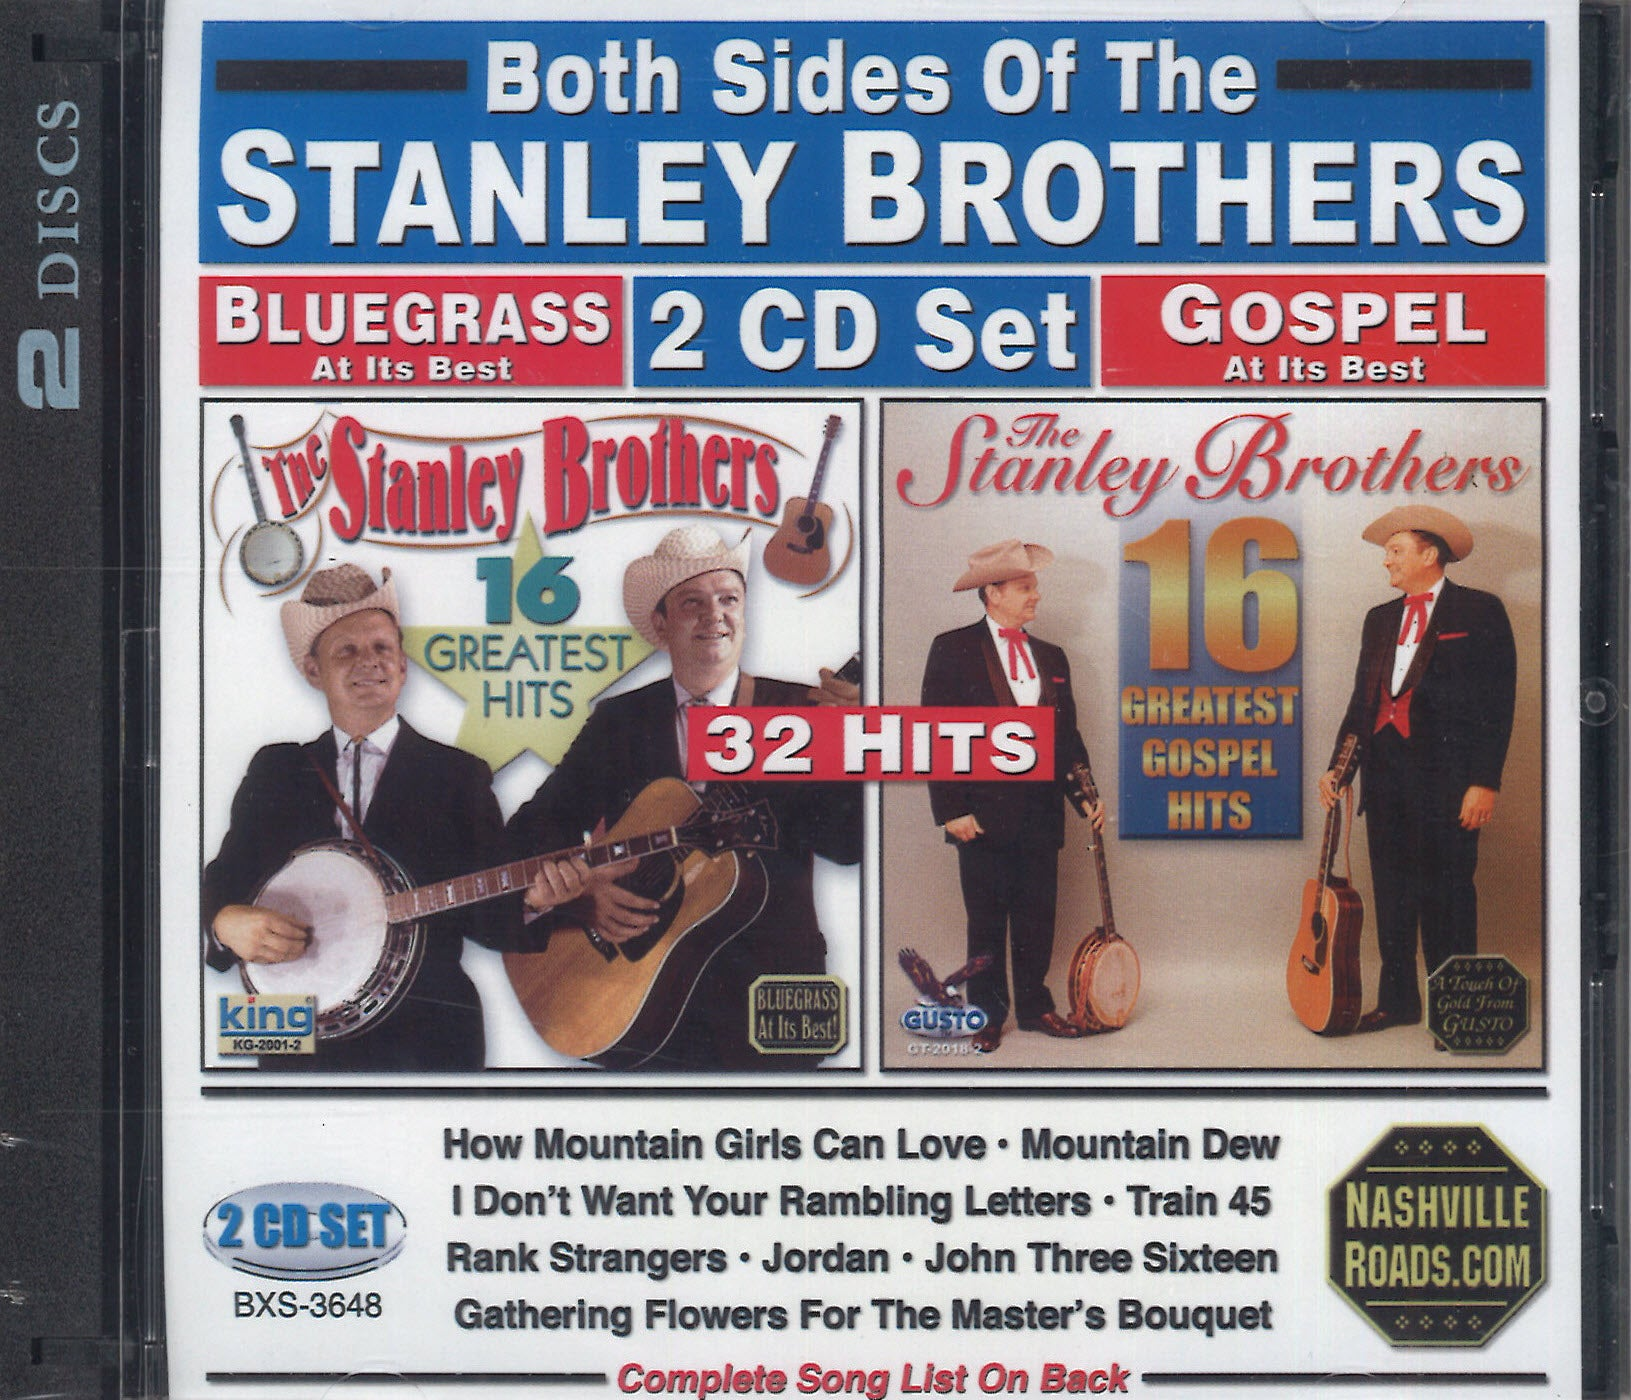 Both Sides Of The Stanley Brothers: 2 CD Set